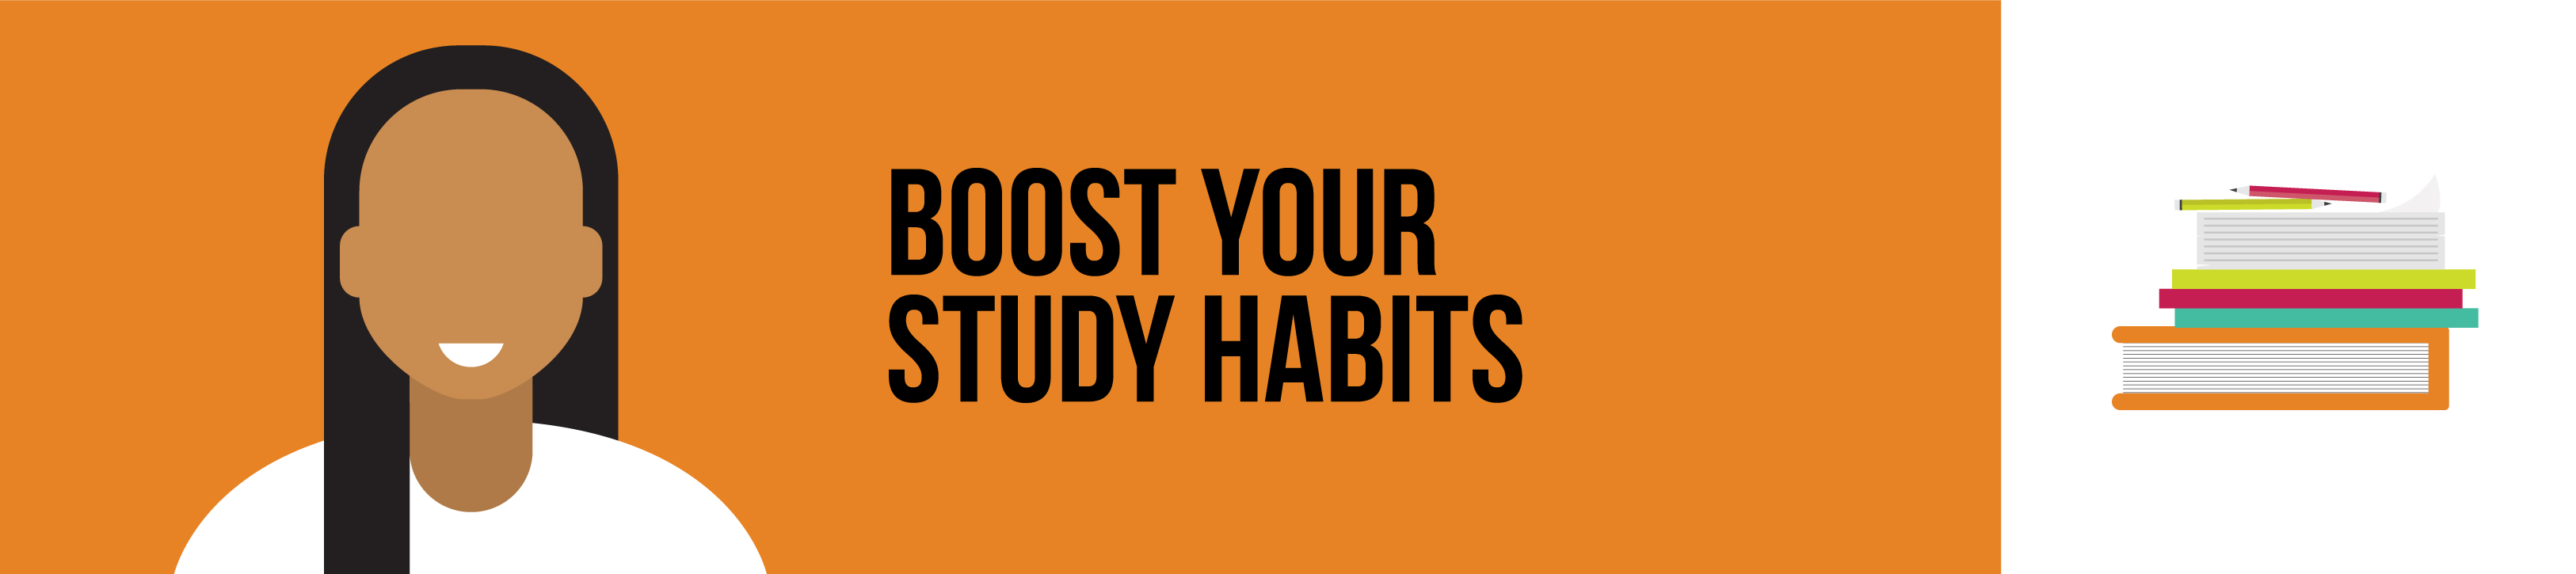 boost your study habits